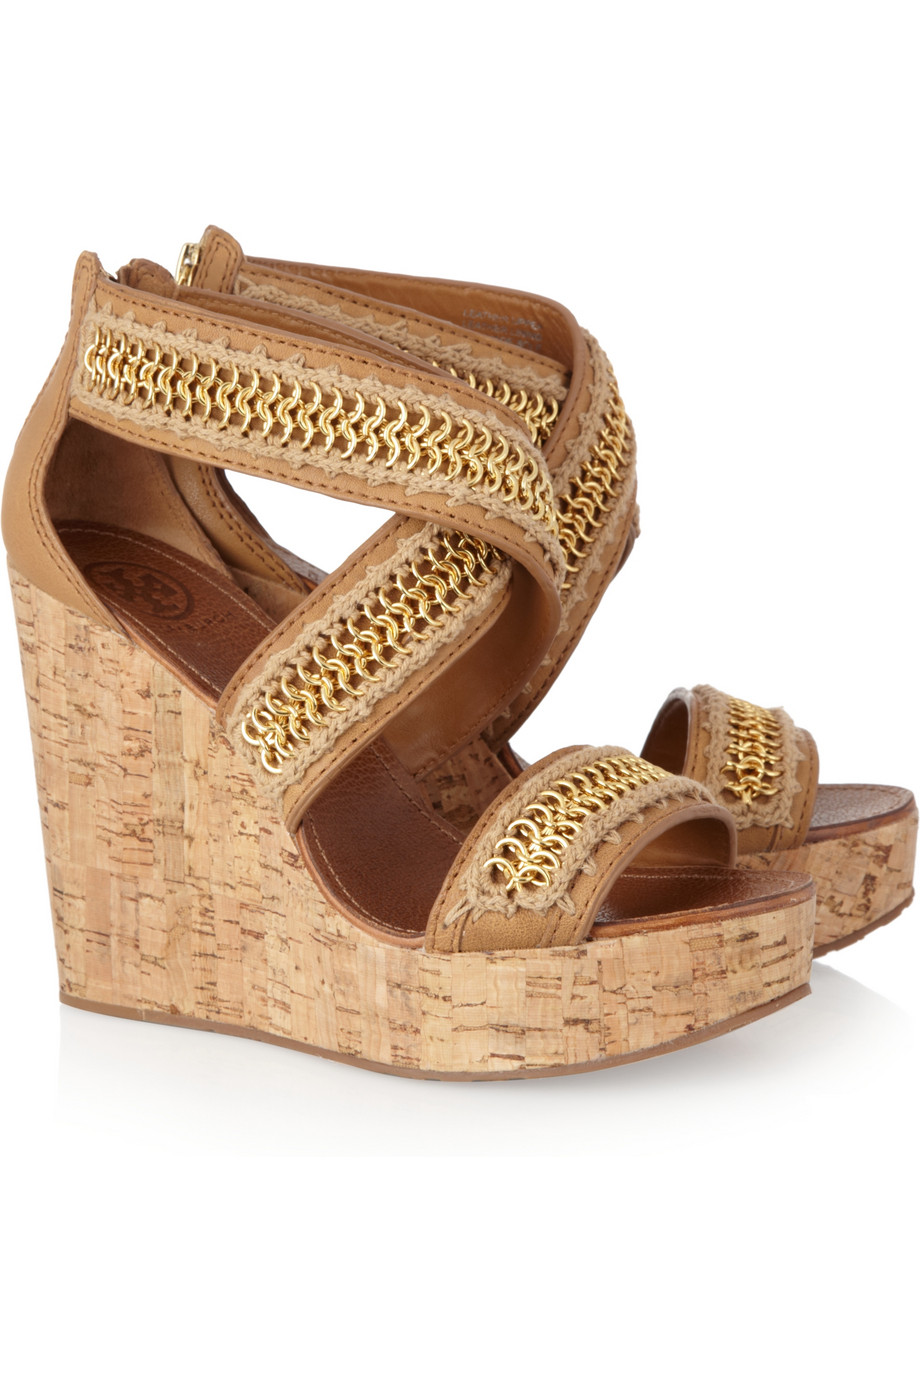 21fb463c2 Tory Burch Lucian Leather and Cork Wedge Sandals in Natural - Lyst